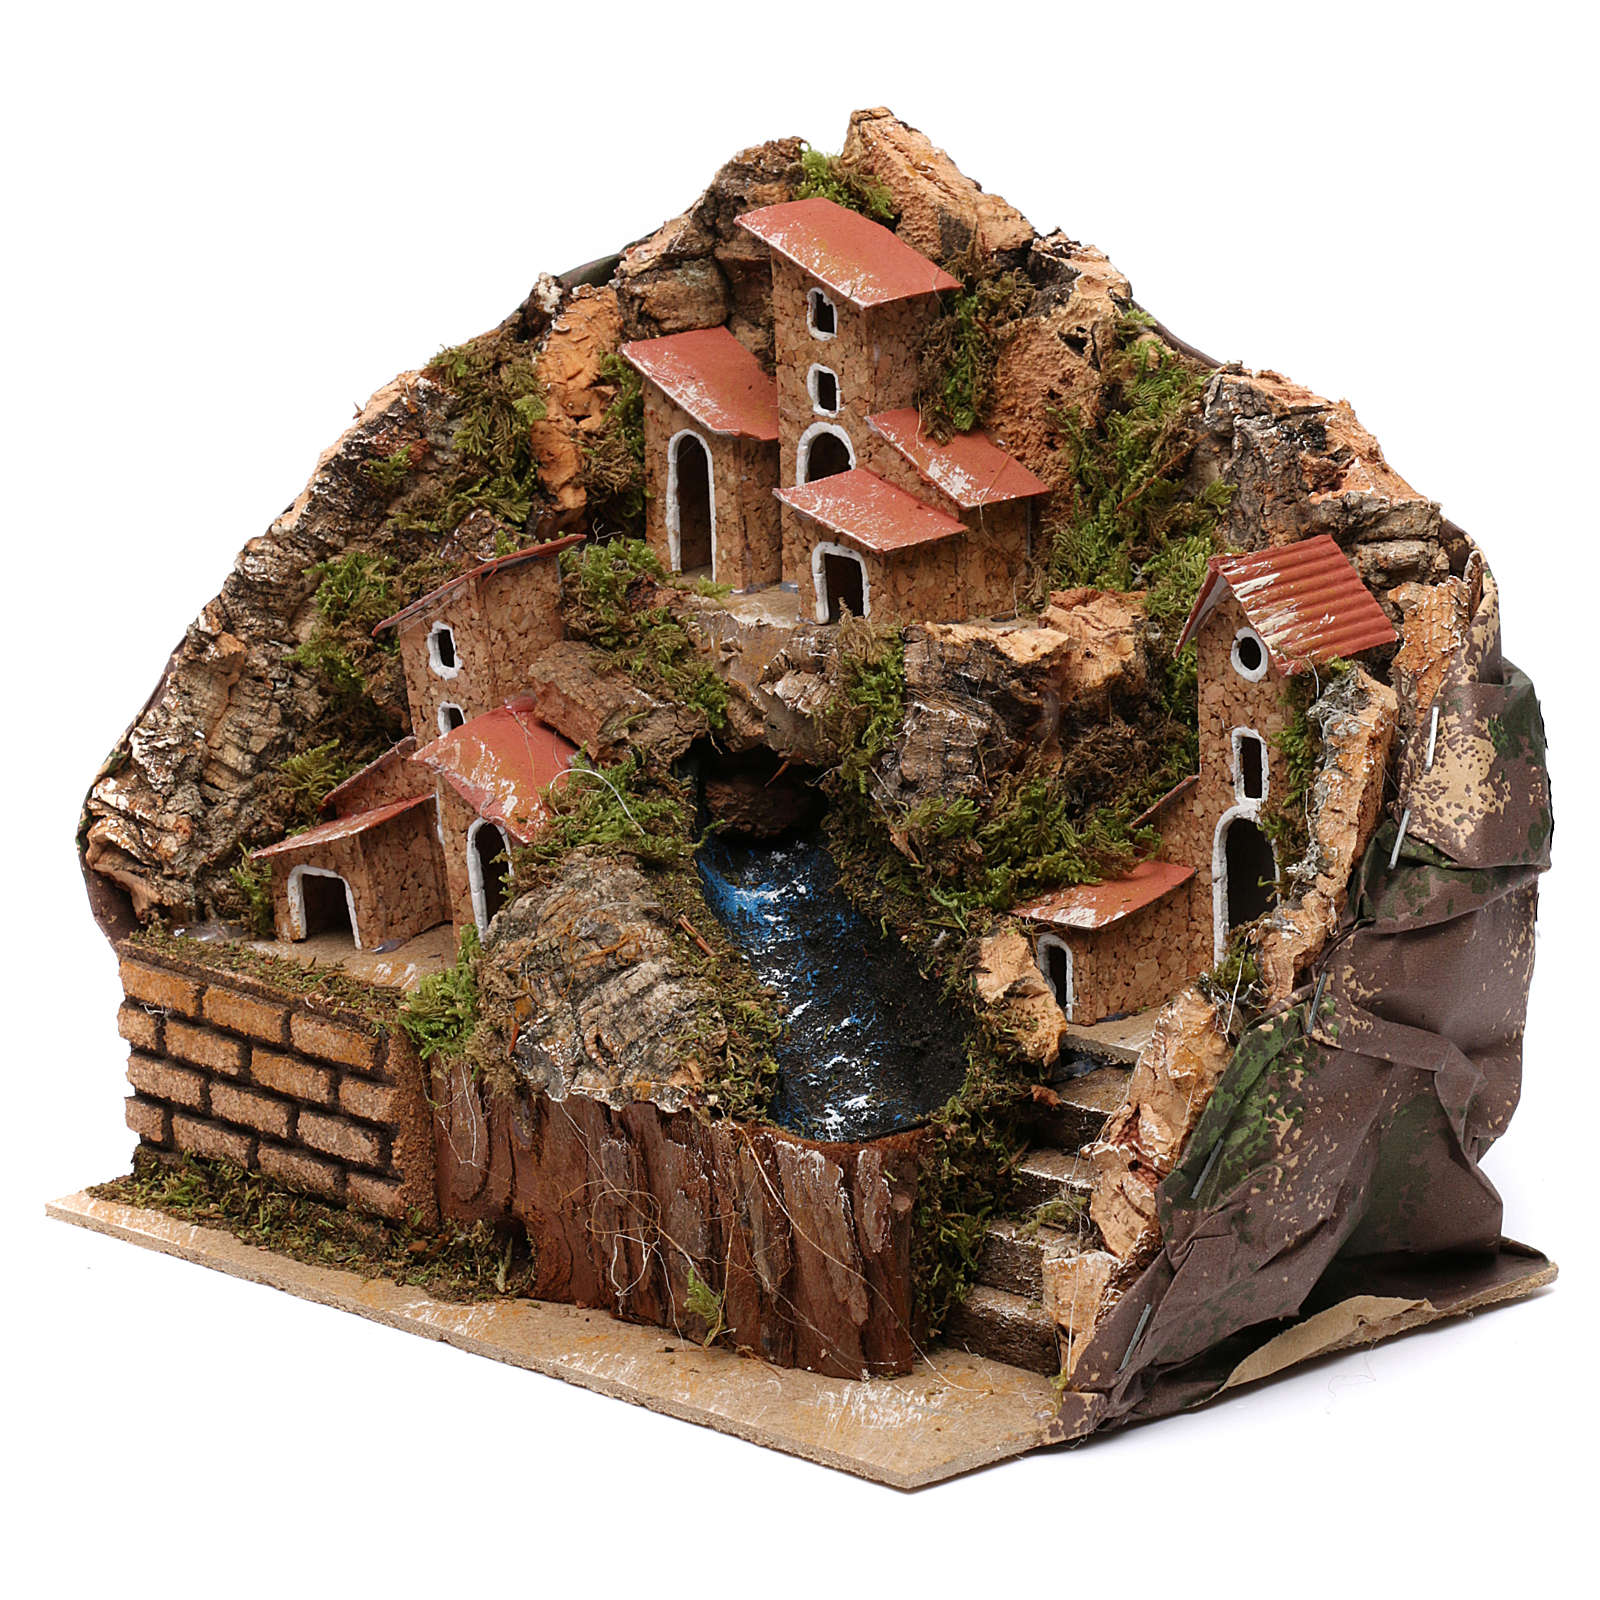 Stream with Pump and Houses for Nativity 20X20X15 cm 4